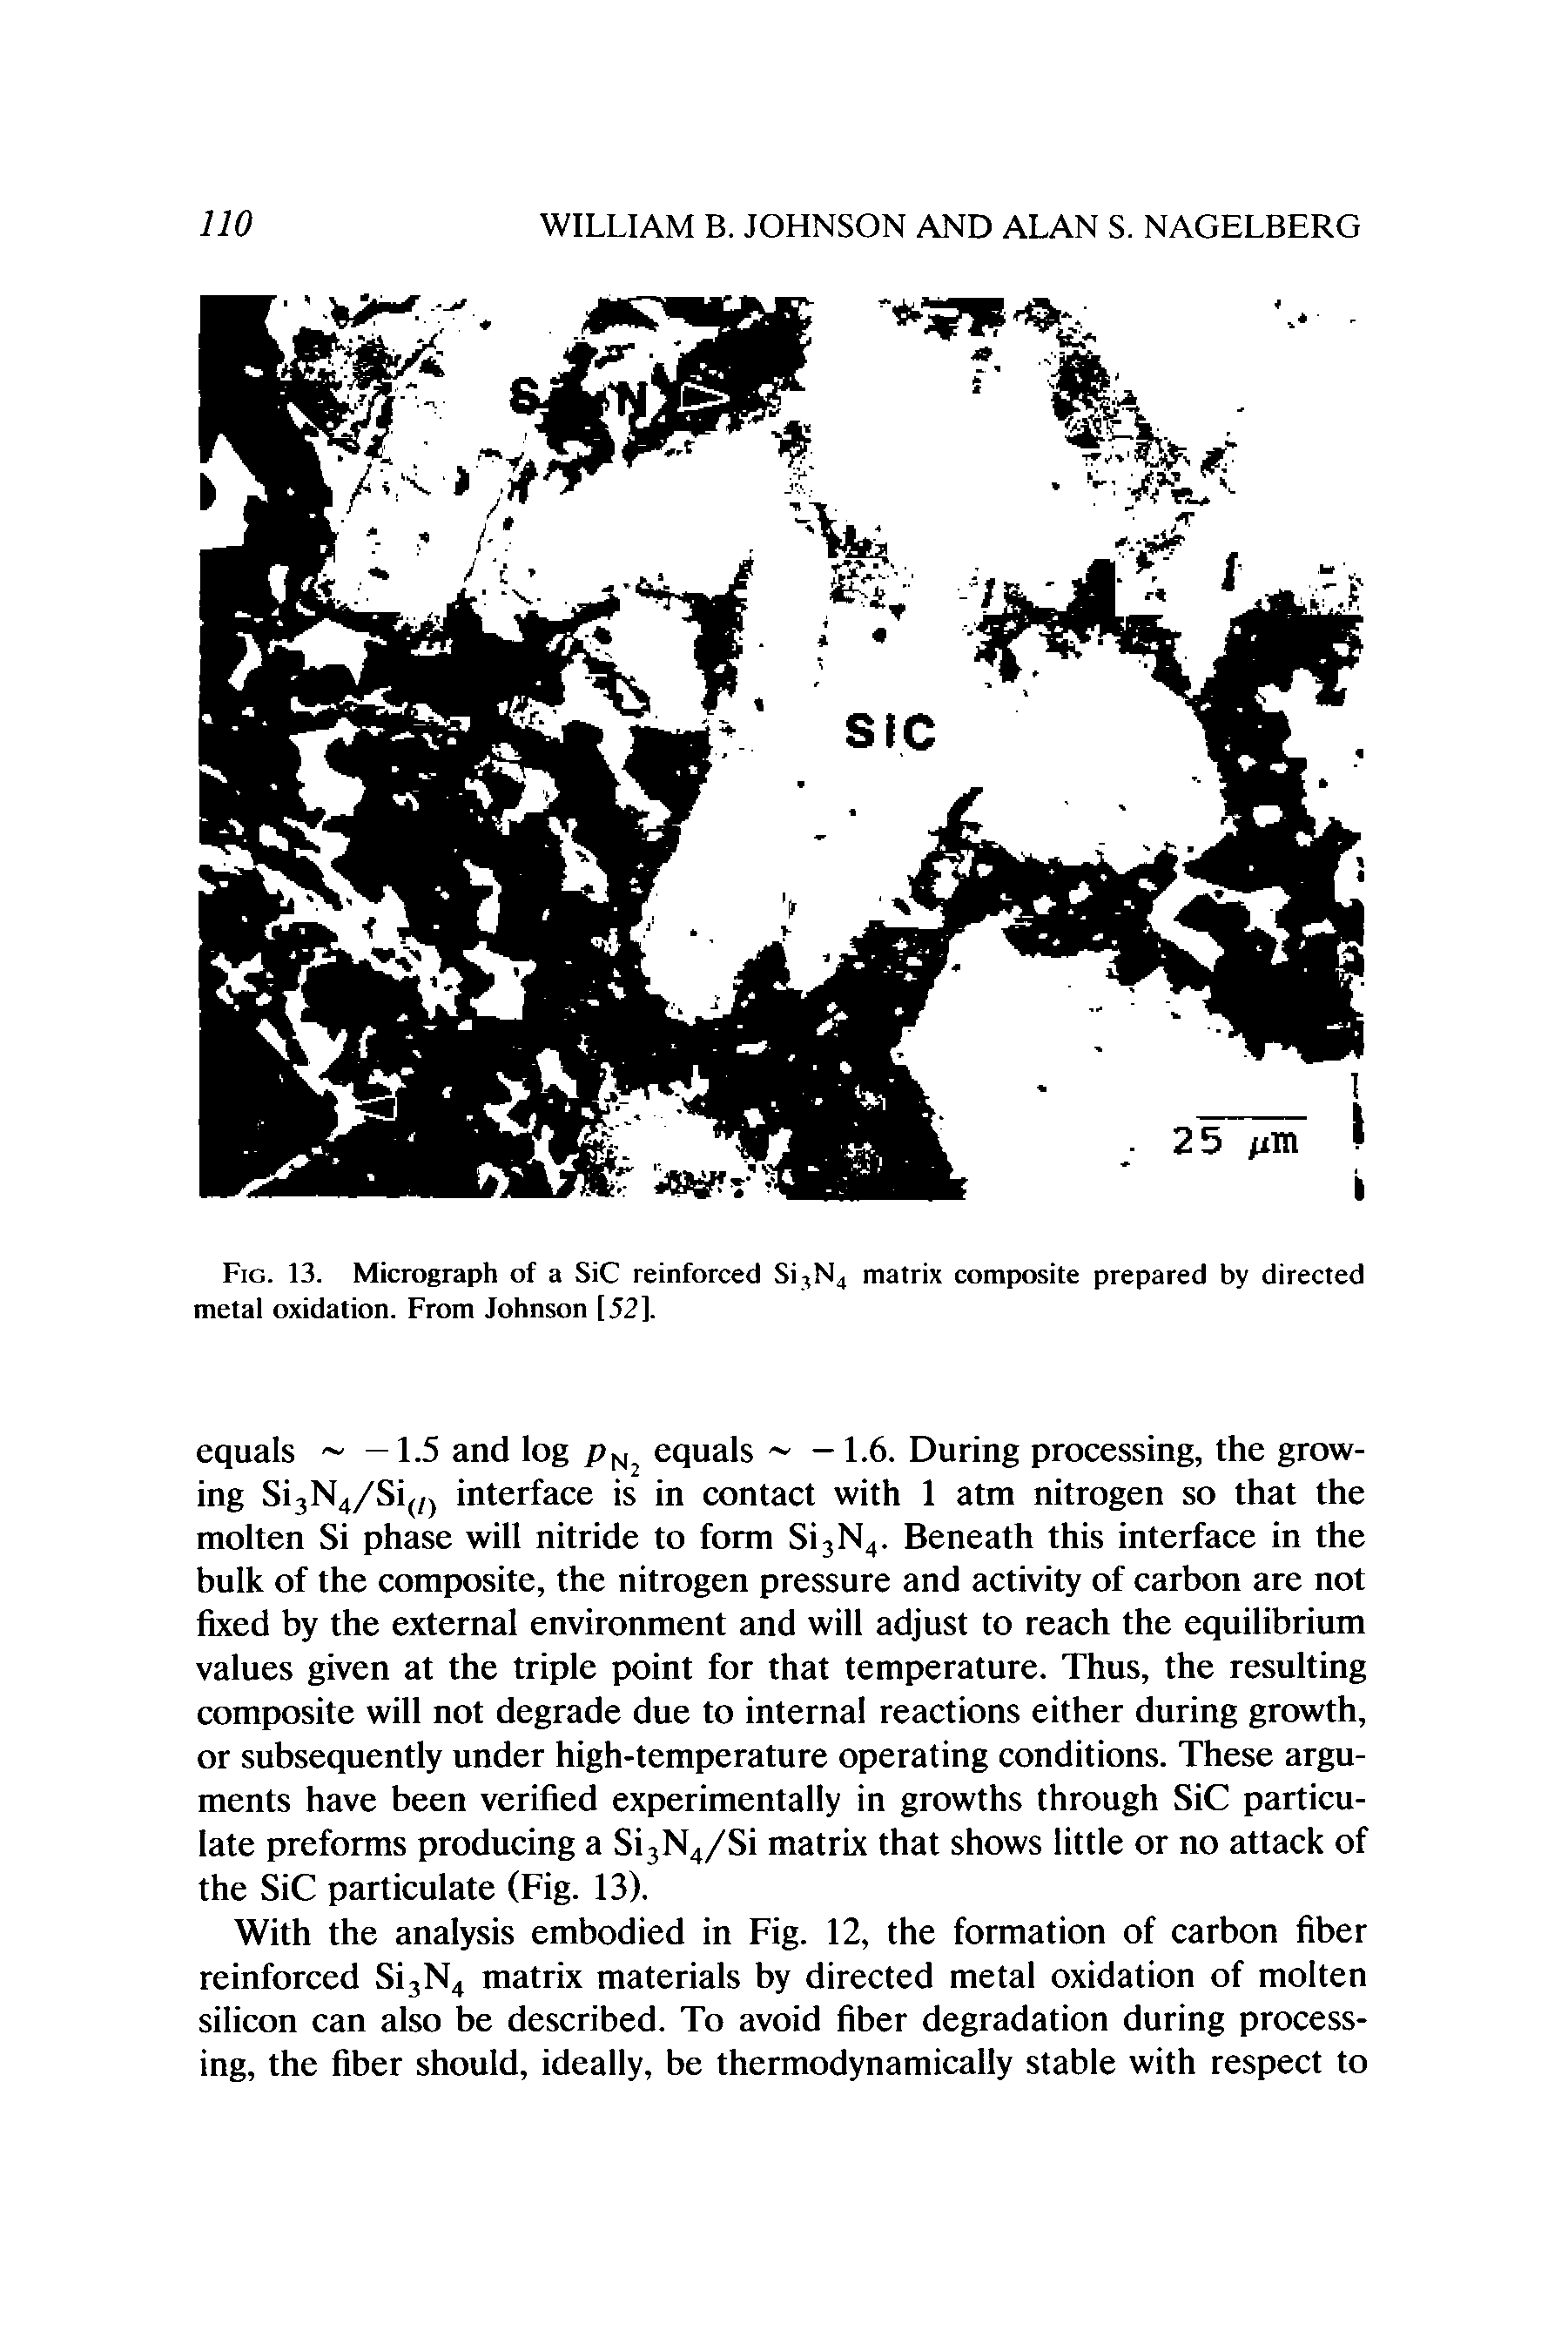 "Fig. 13. Micrograph of a SiC reinforced Si, N4 <a href=""/info/mg_li_matrix_composite"">matrix composite</a> prepared by directed metal oxidation. From Johnson [52]."